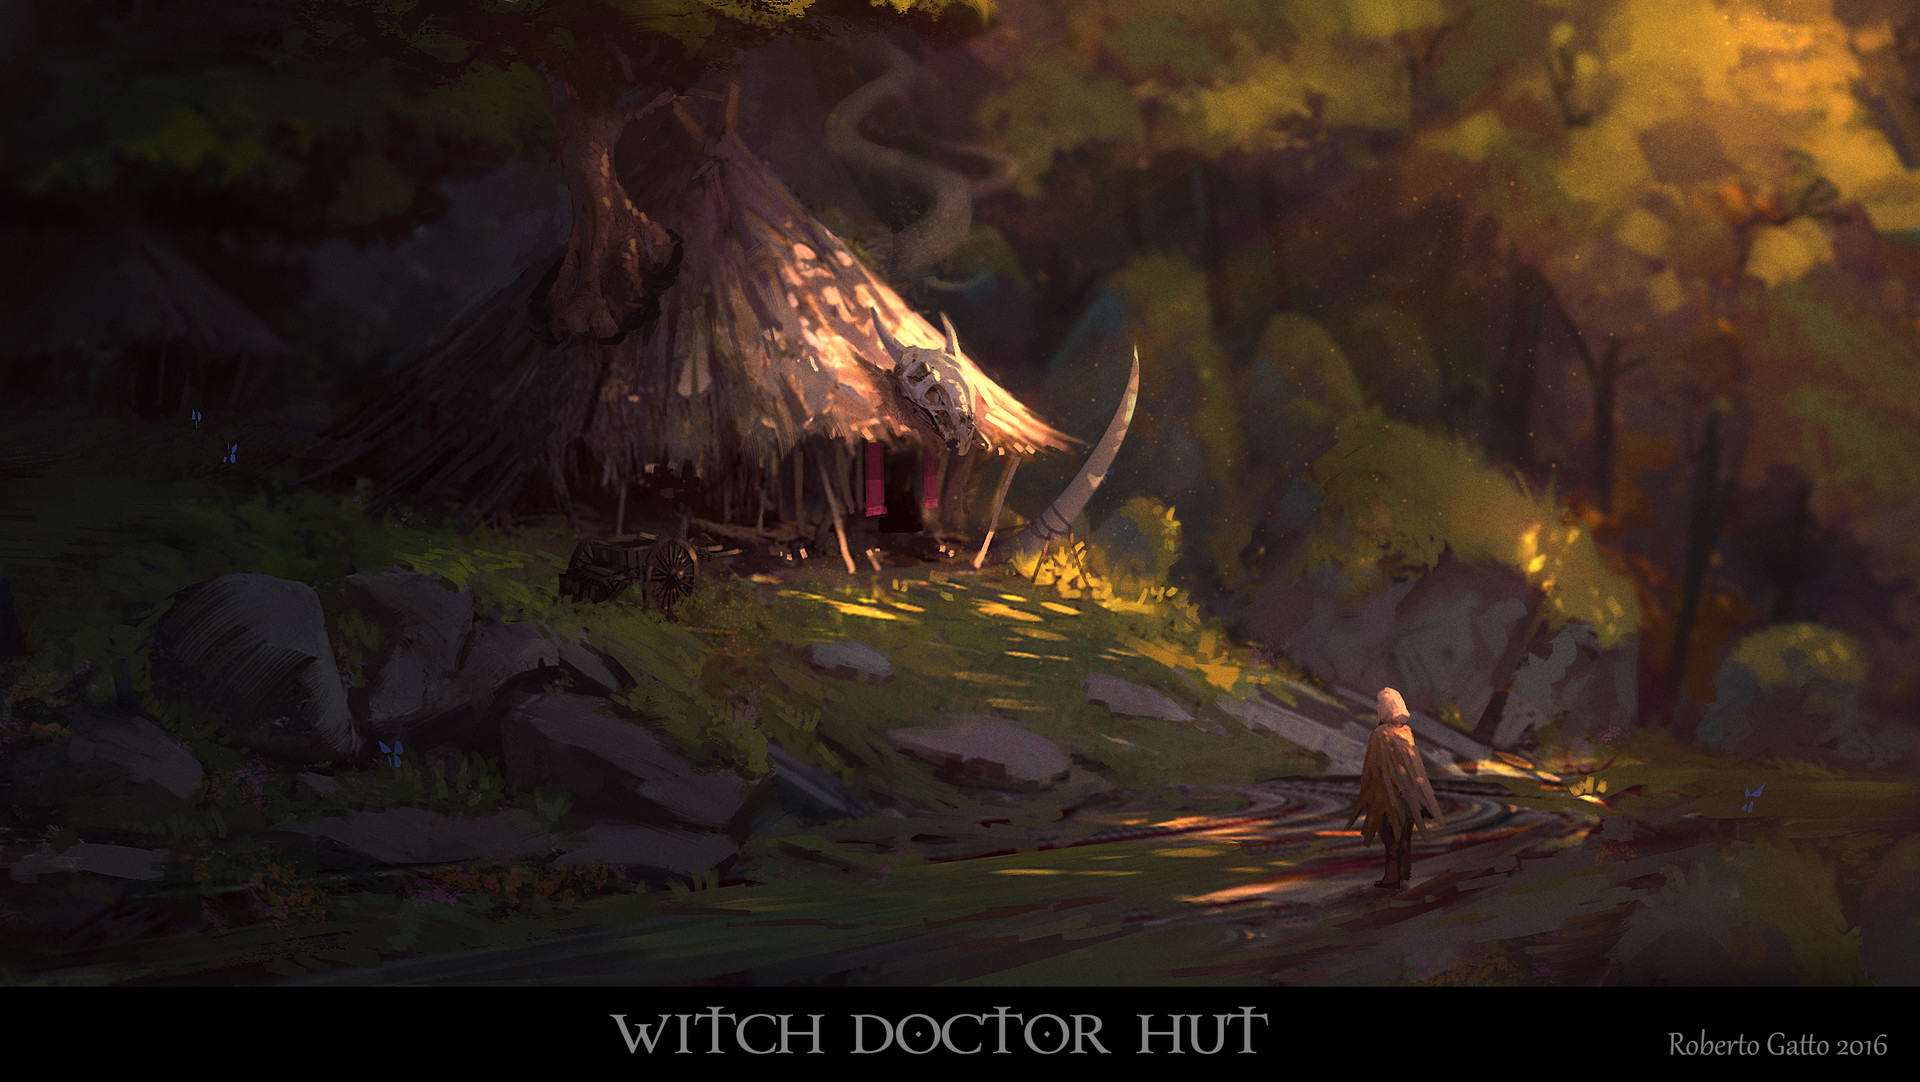 Witch doctor hut